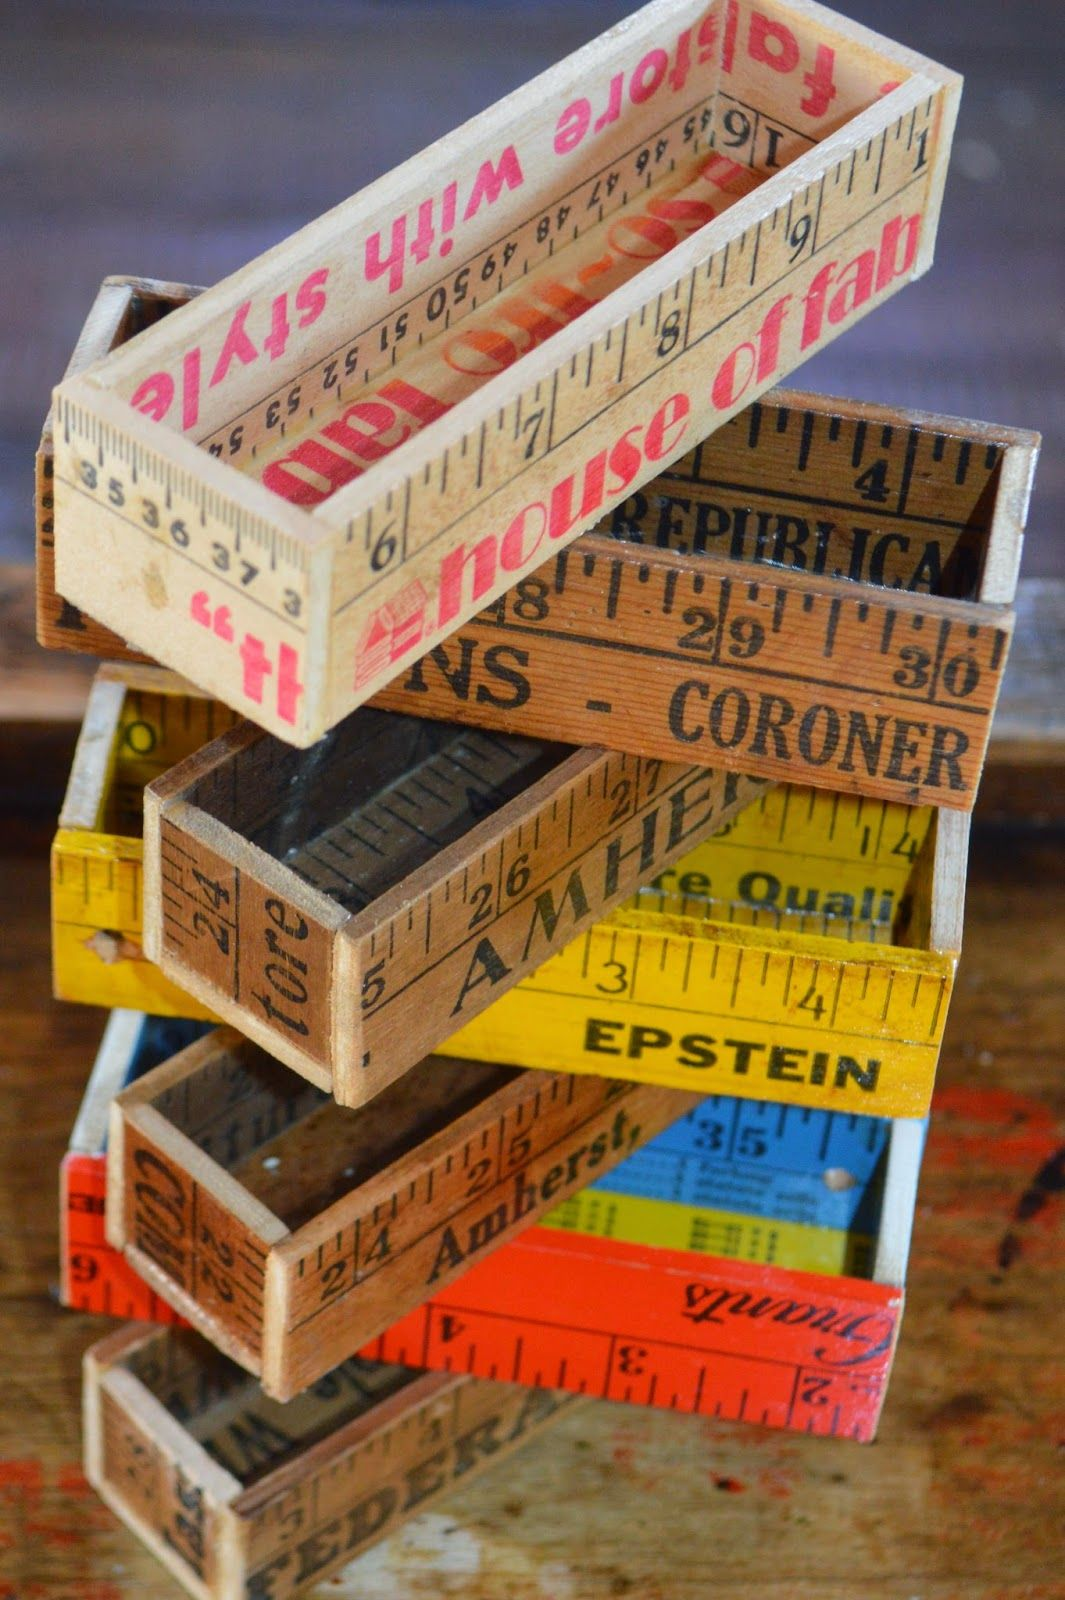 These yard sticks turned business card holders are a